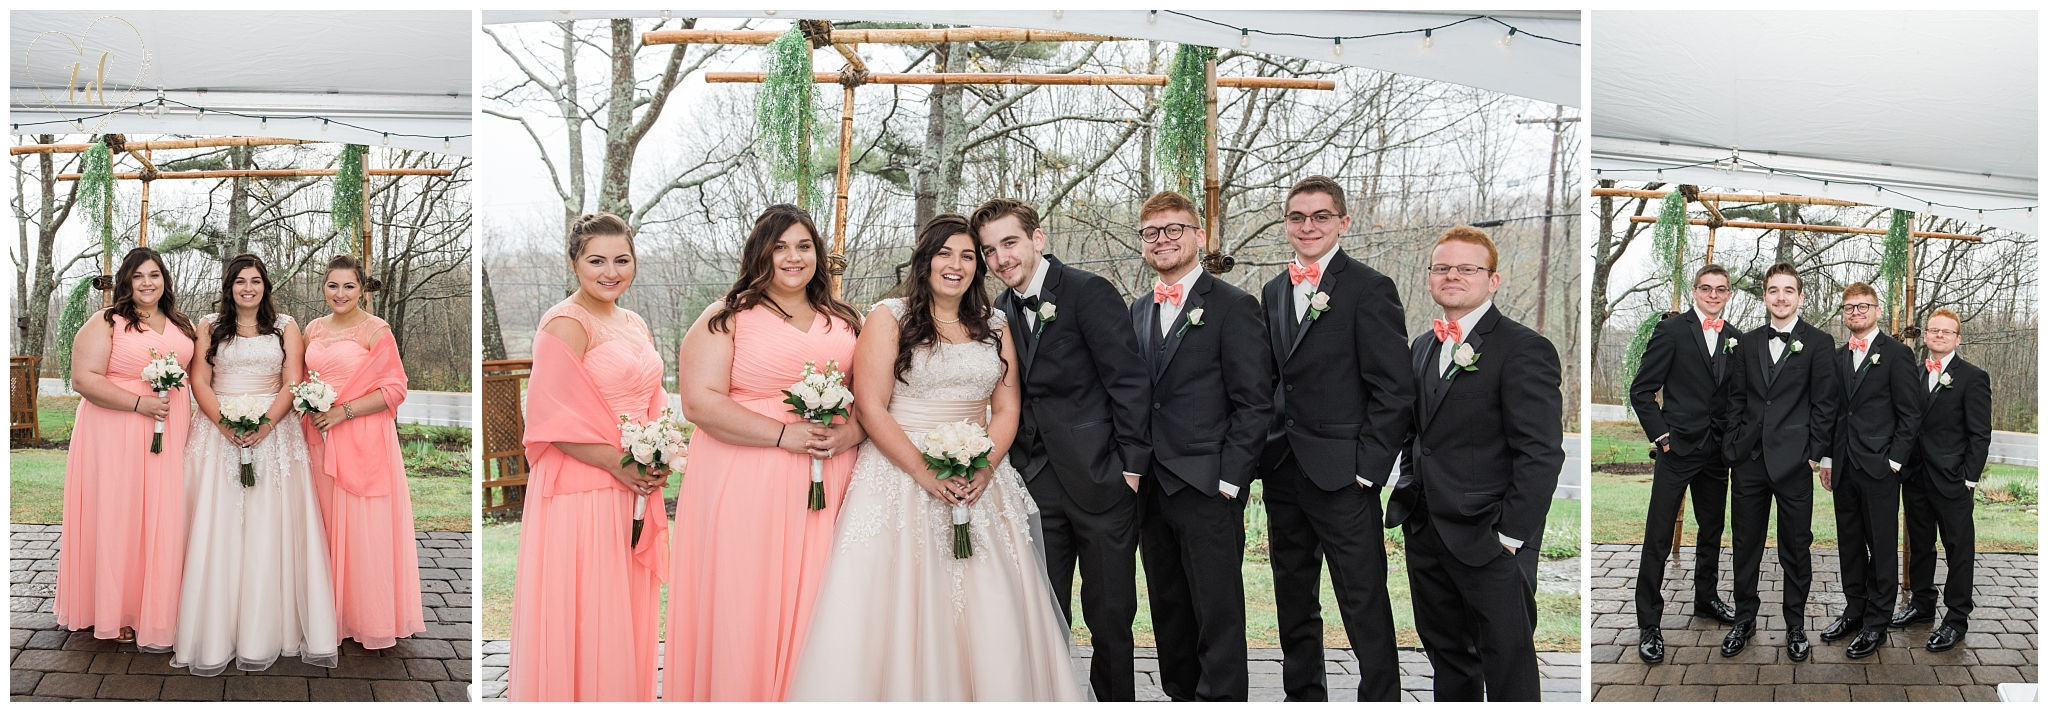 Wedding party portraits in Maine